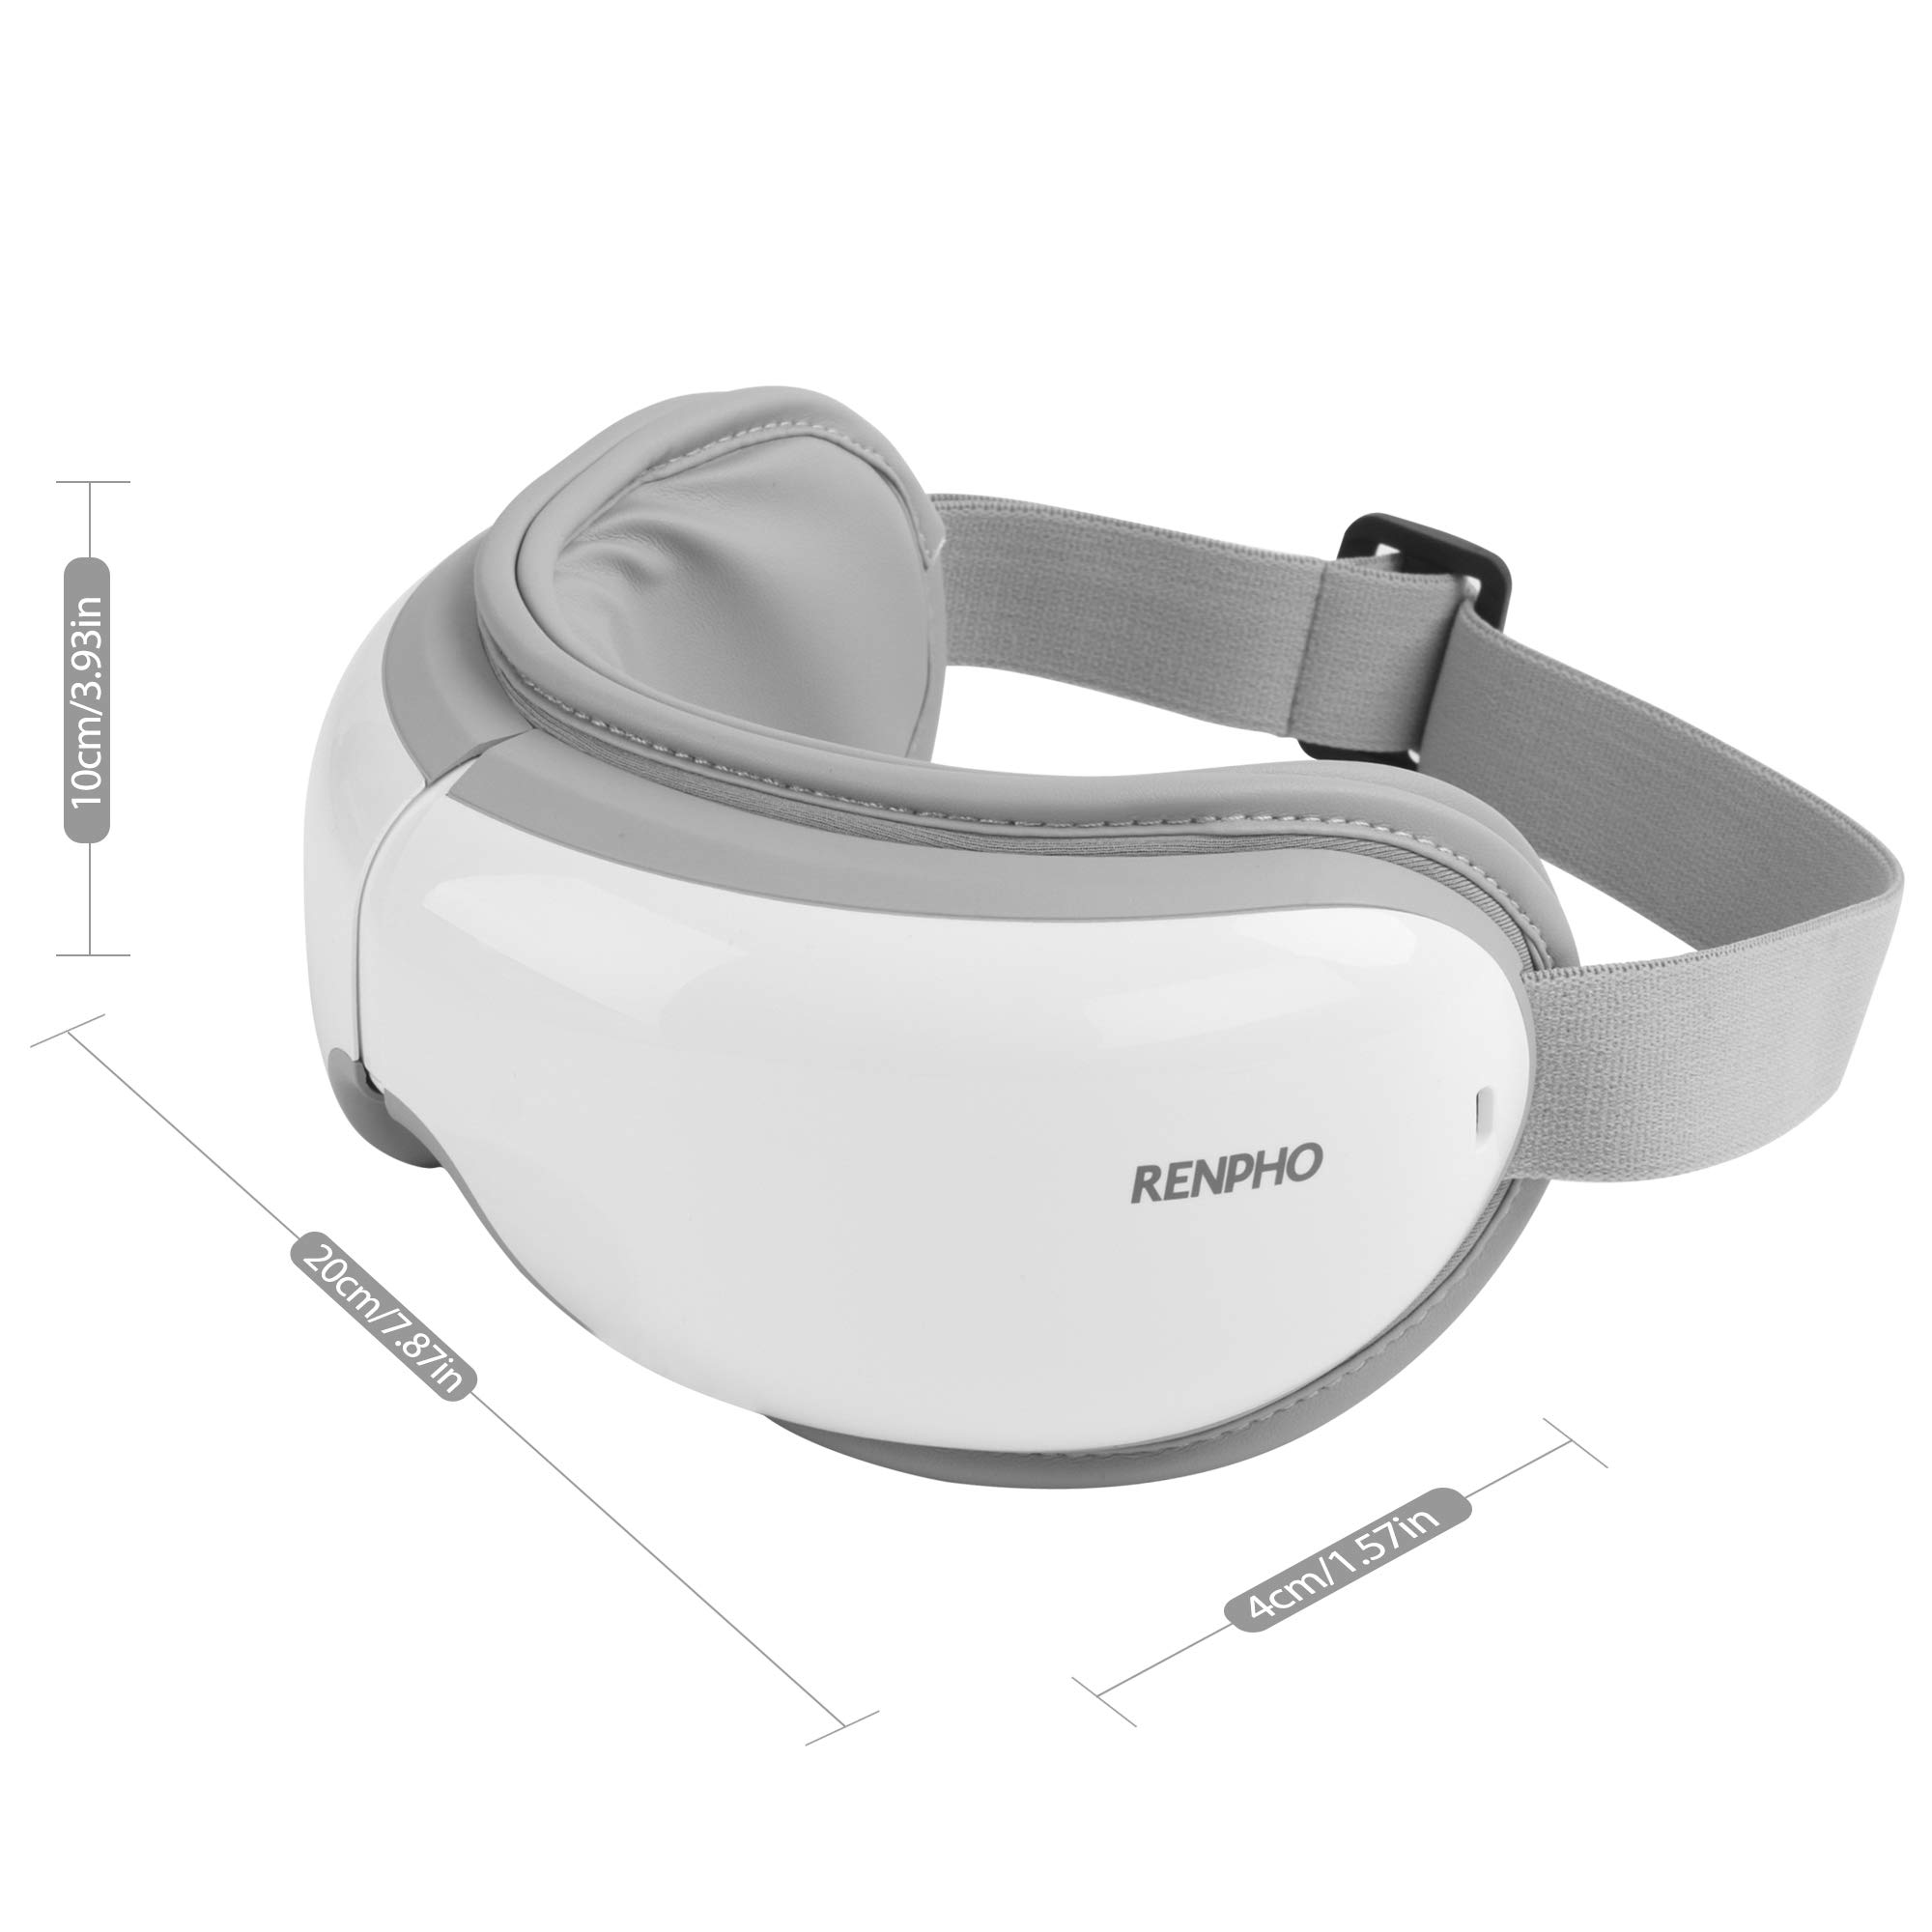 RENPHO Eye Massager with Heat,Air Compression Bluetooth Music Rechargeable Eye Therapy Massager for Relieve Eye Strain Dark Circles Eye Bags Dry Eye Improve Sleep by RENPHO